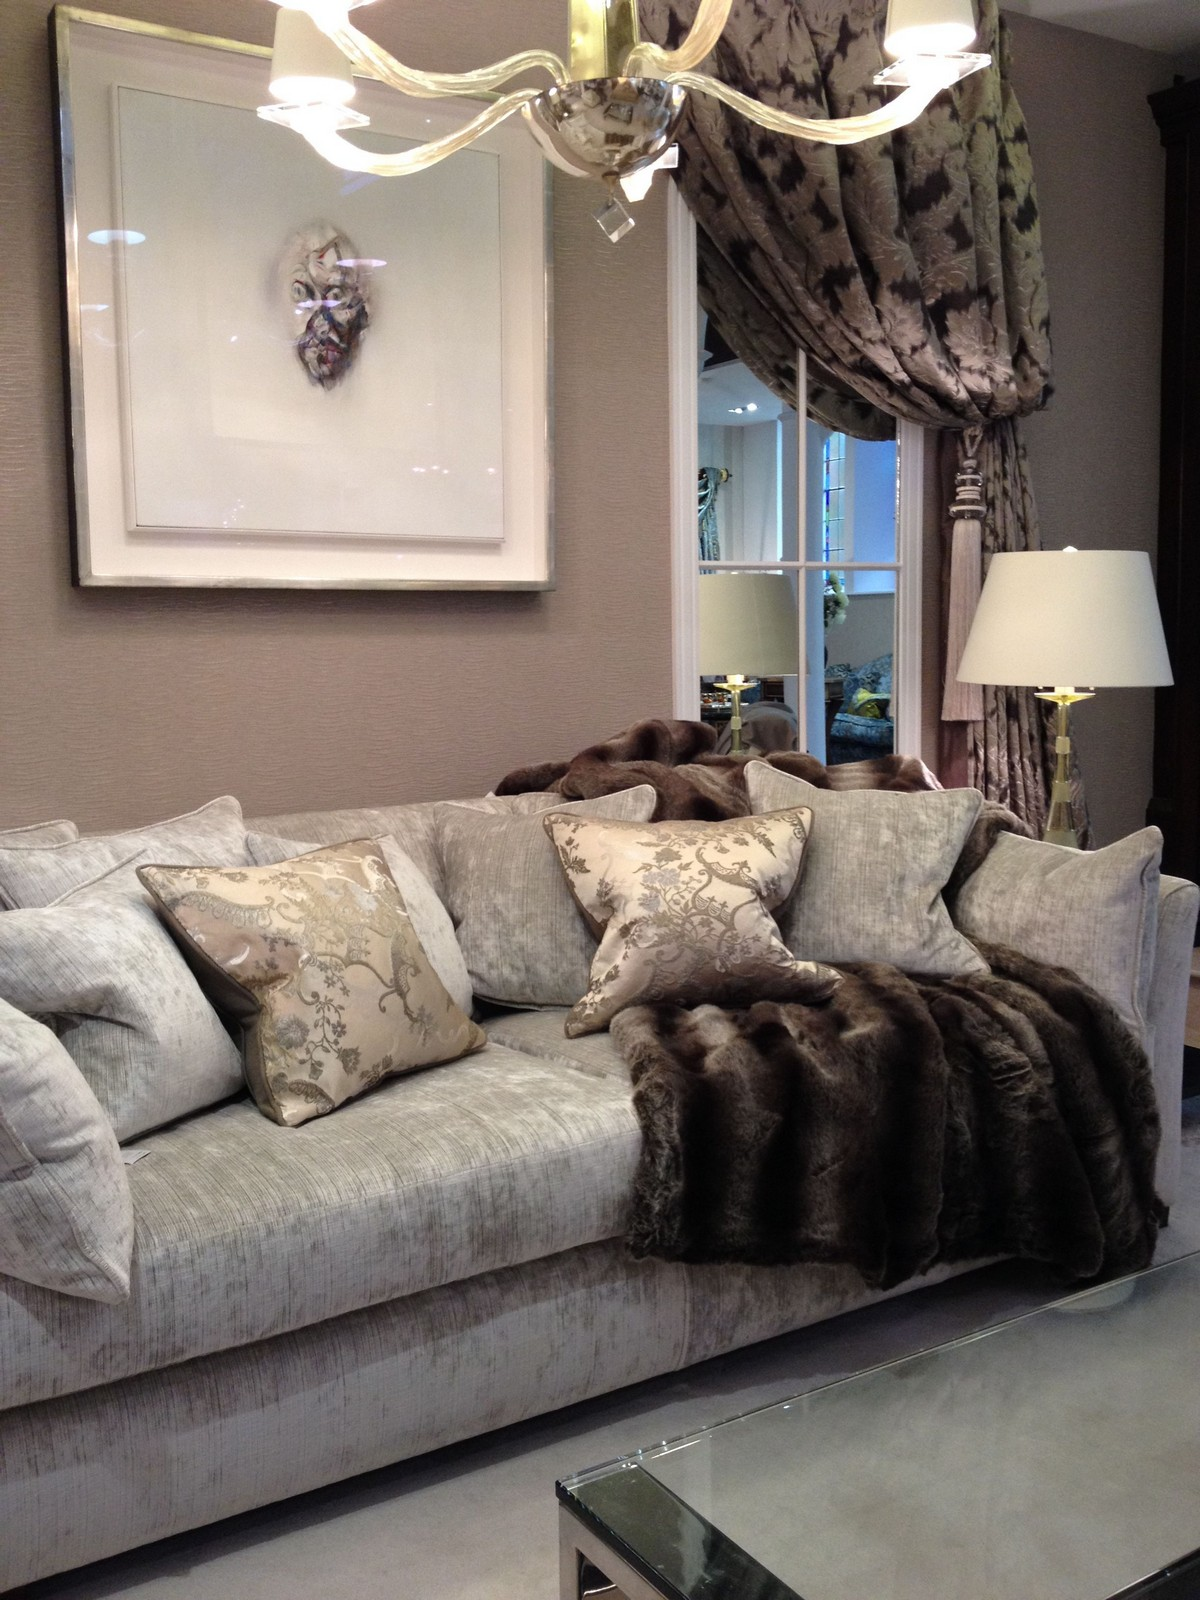 Kris Turnbull Studios: A Modern Approach to a Luxury Lifestyle